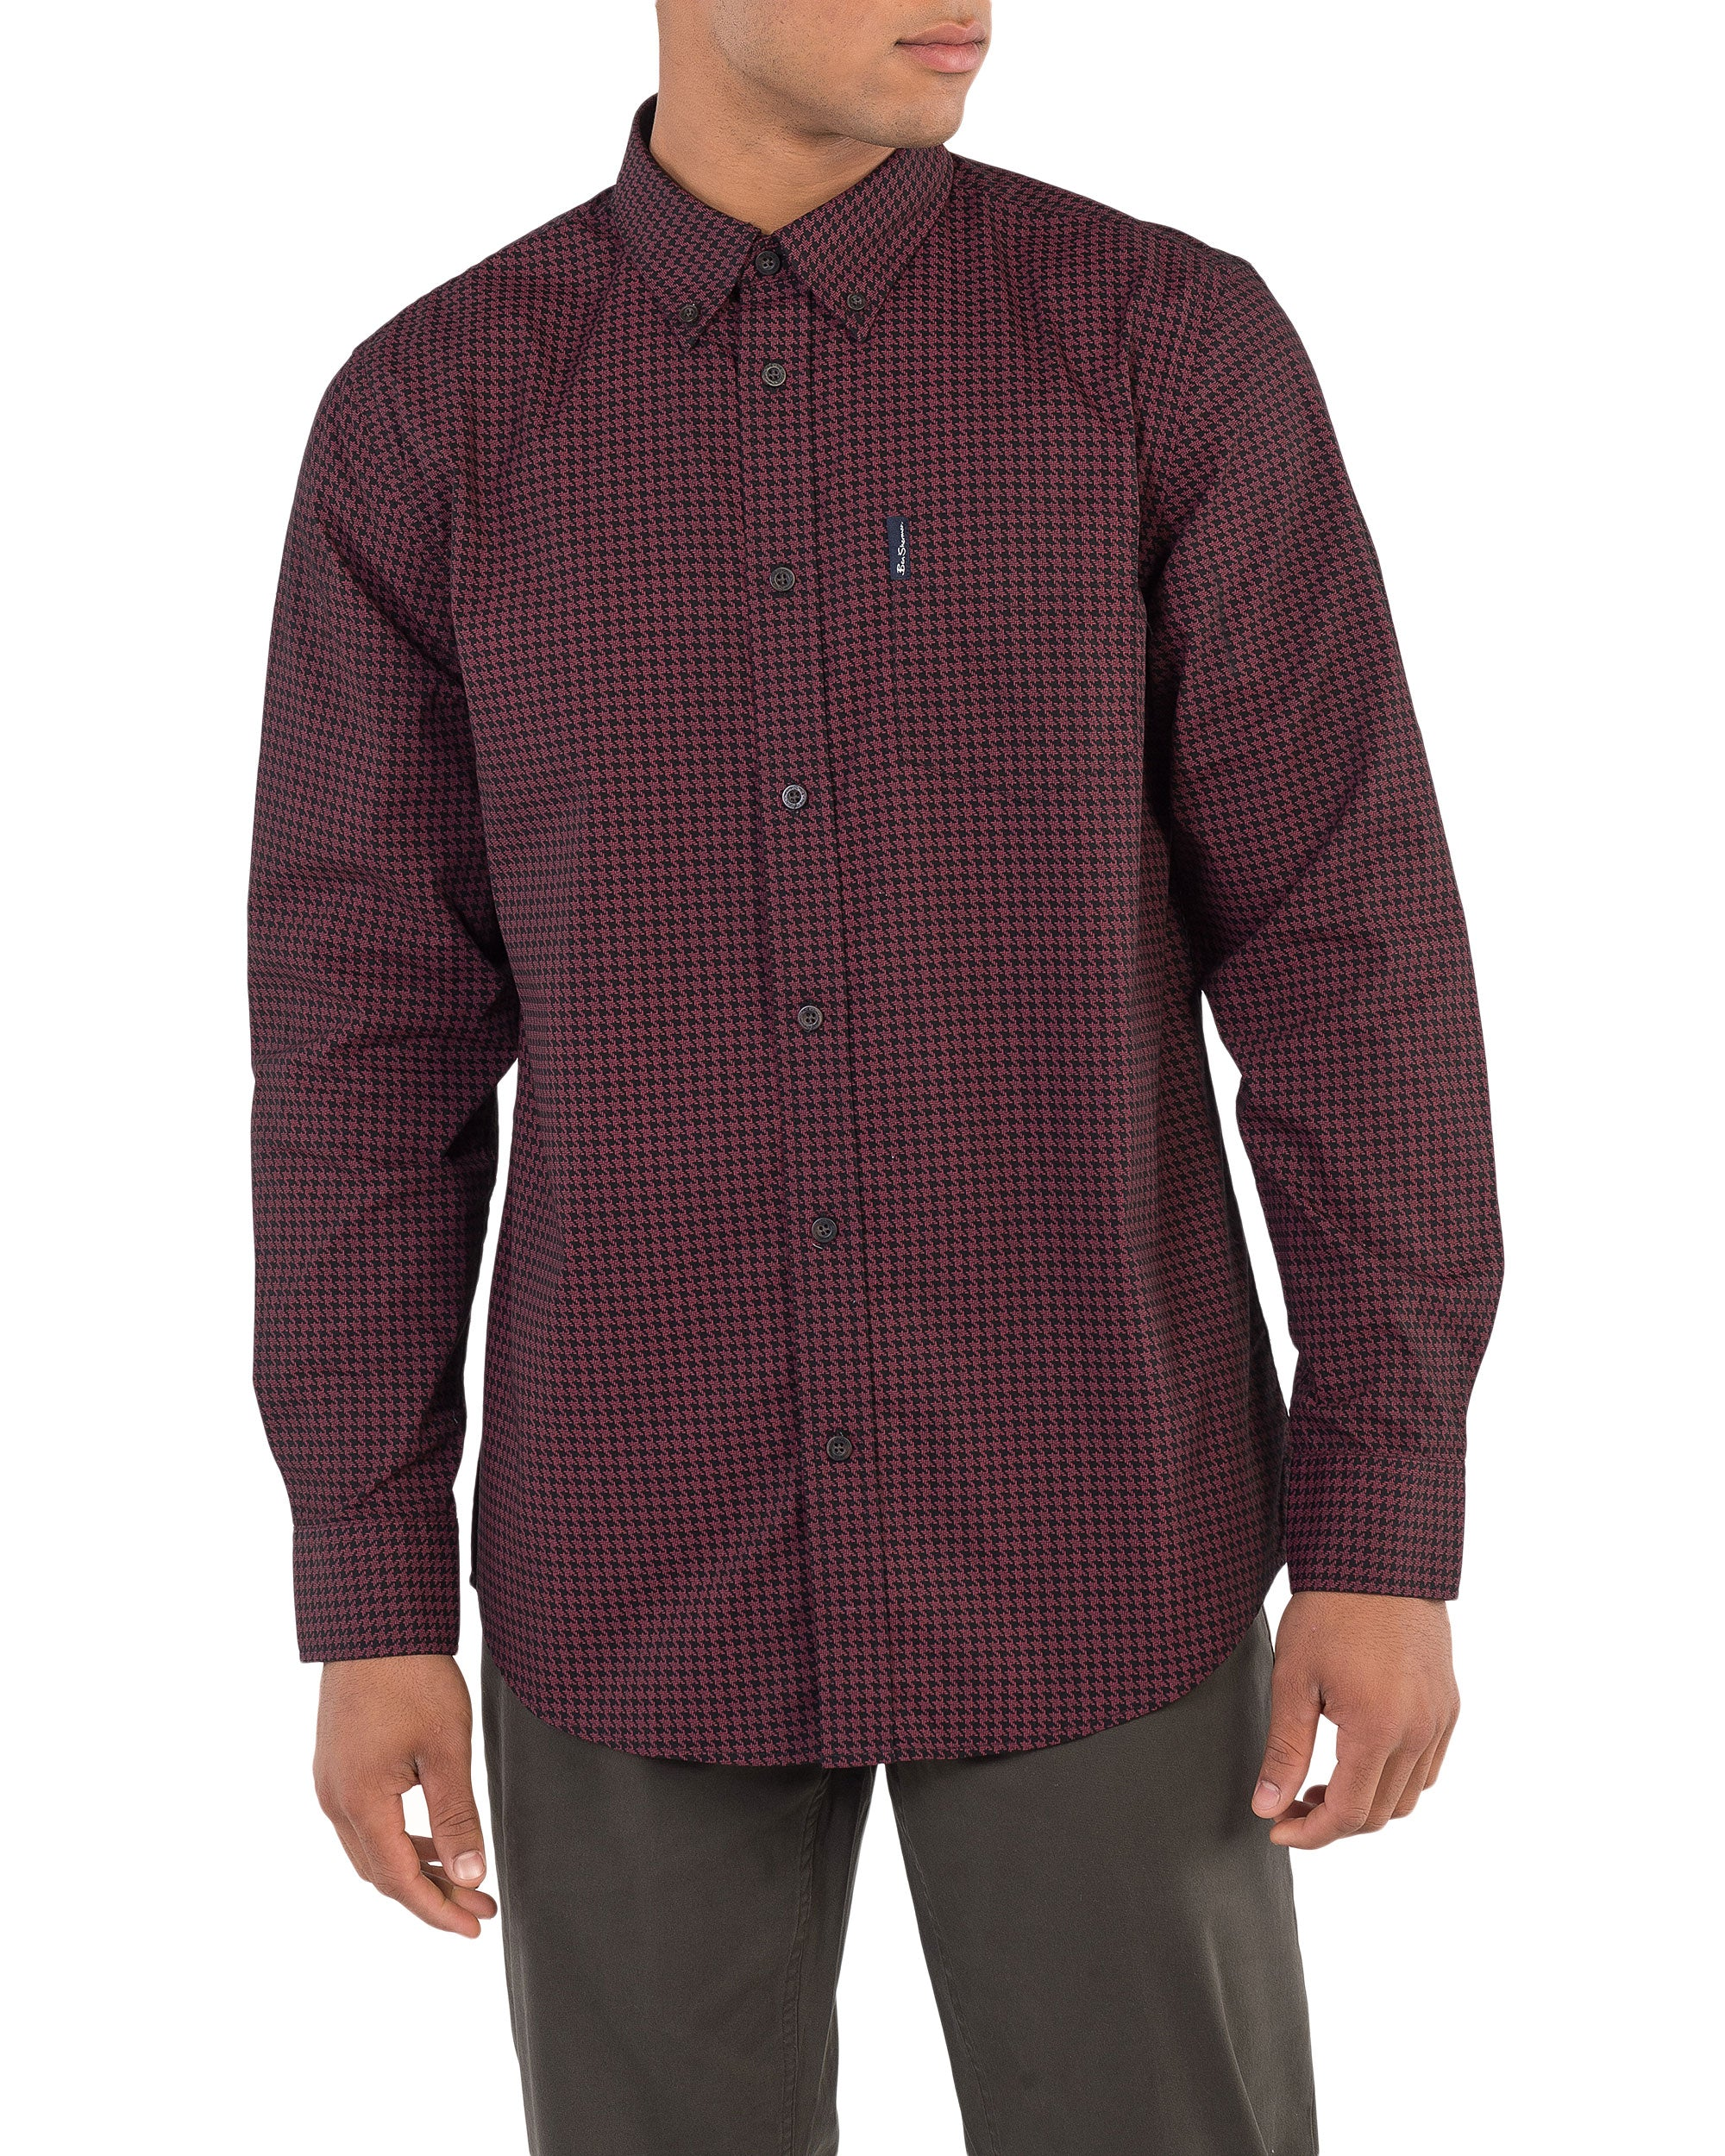 Long-Sleeve Dogtooth Print Shirt - Ruby